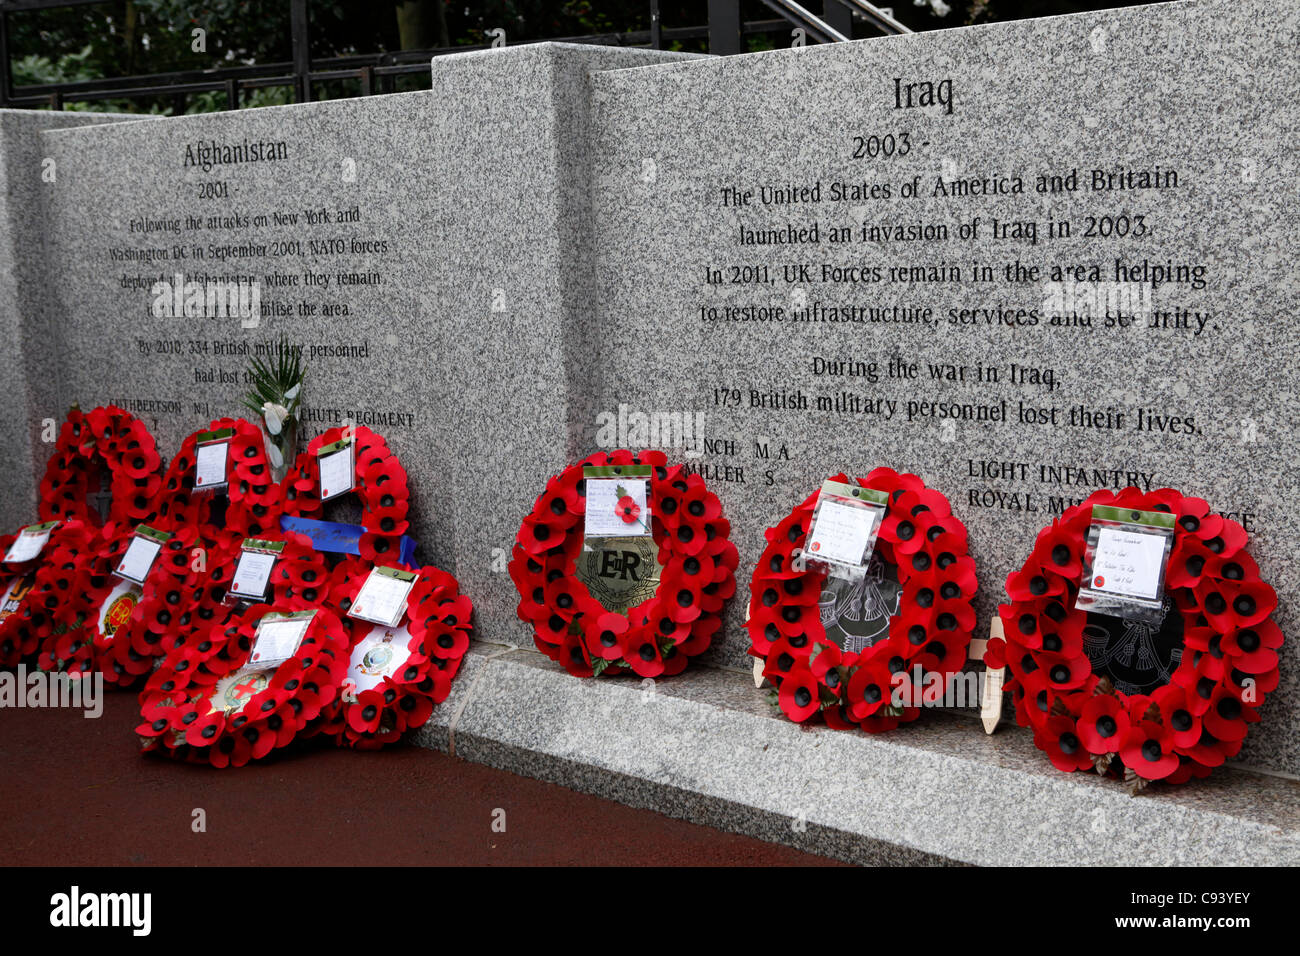 Wreaths at the newly dedicated City of Sunderland Memorial Wall in Sunderland, Tyne and Wear, England. The wall - Stock Image